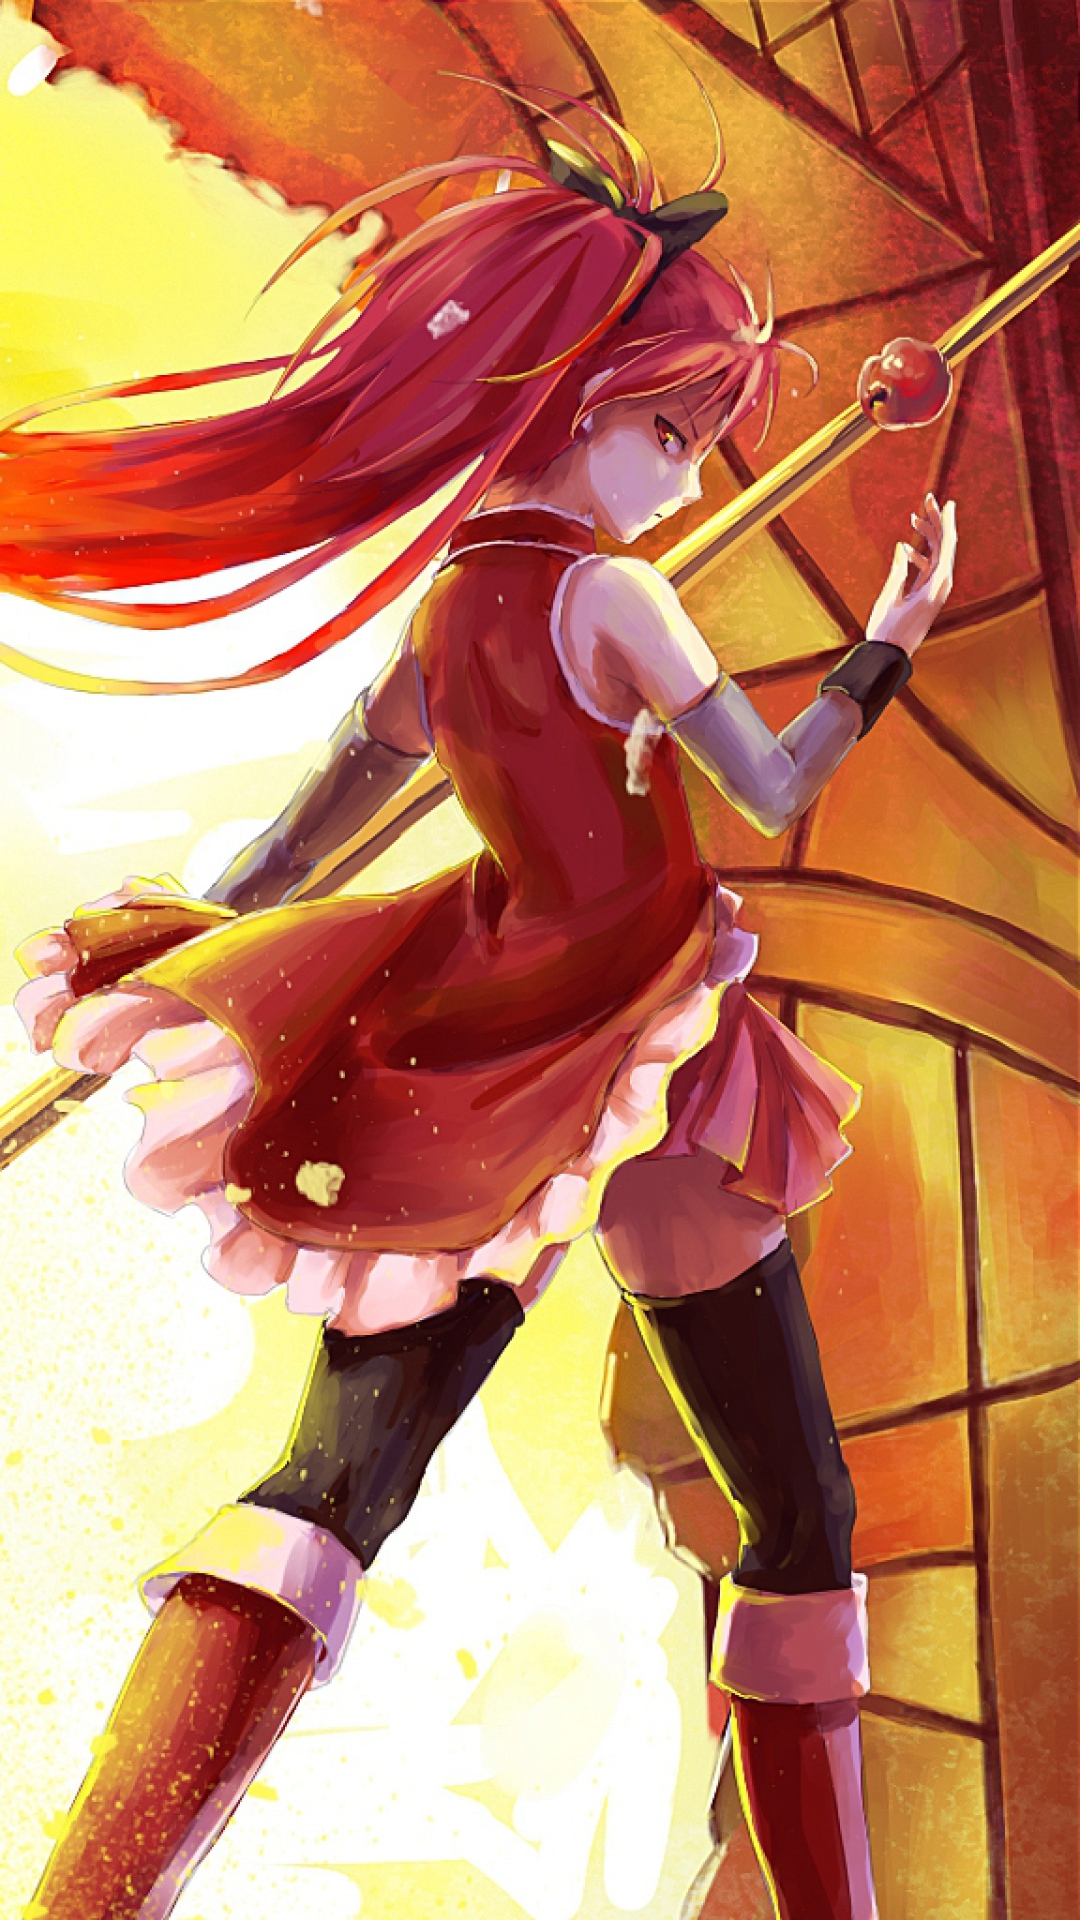 Download Wallpaper 1080x1920 anime girl arrow light flame Sony 1080x1920